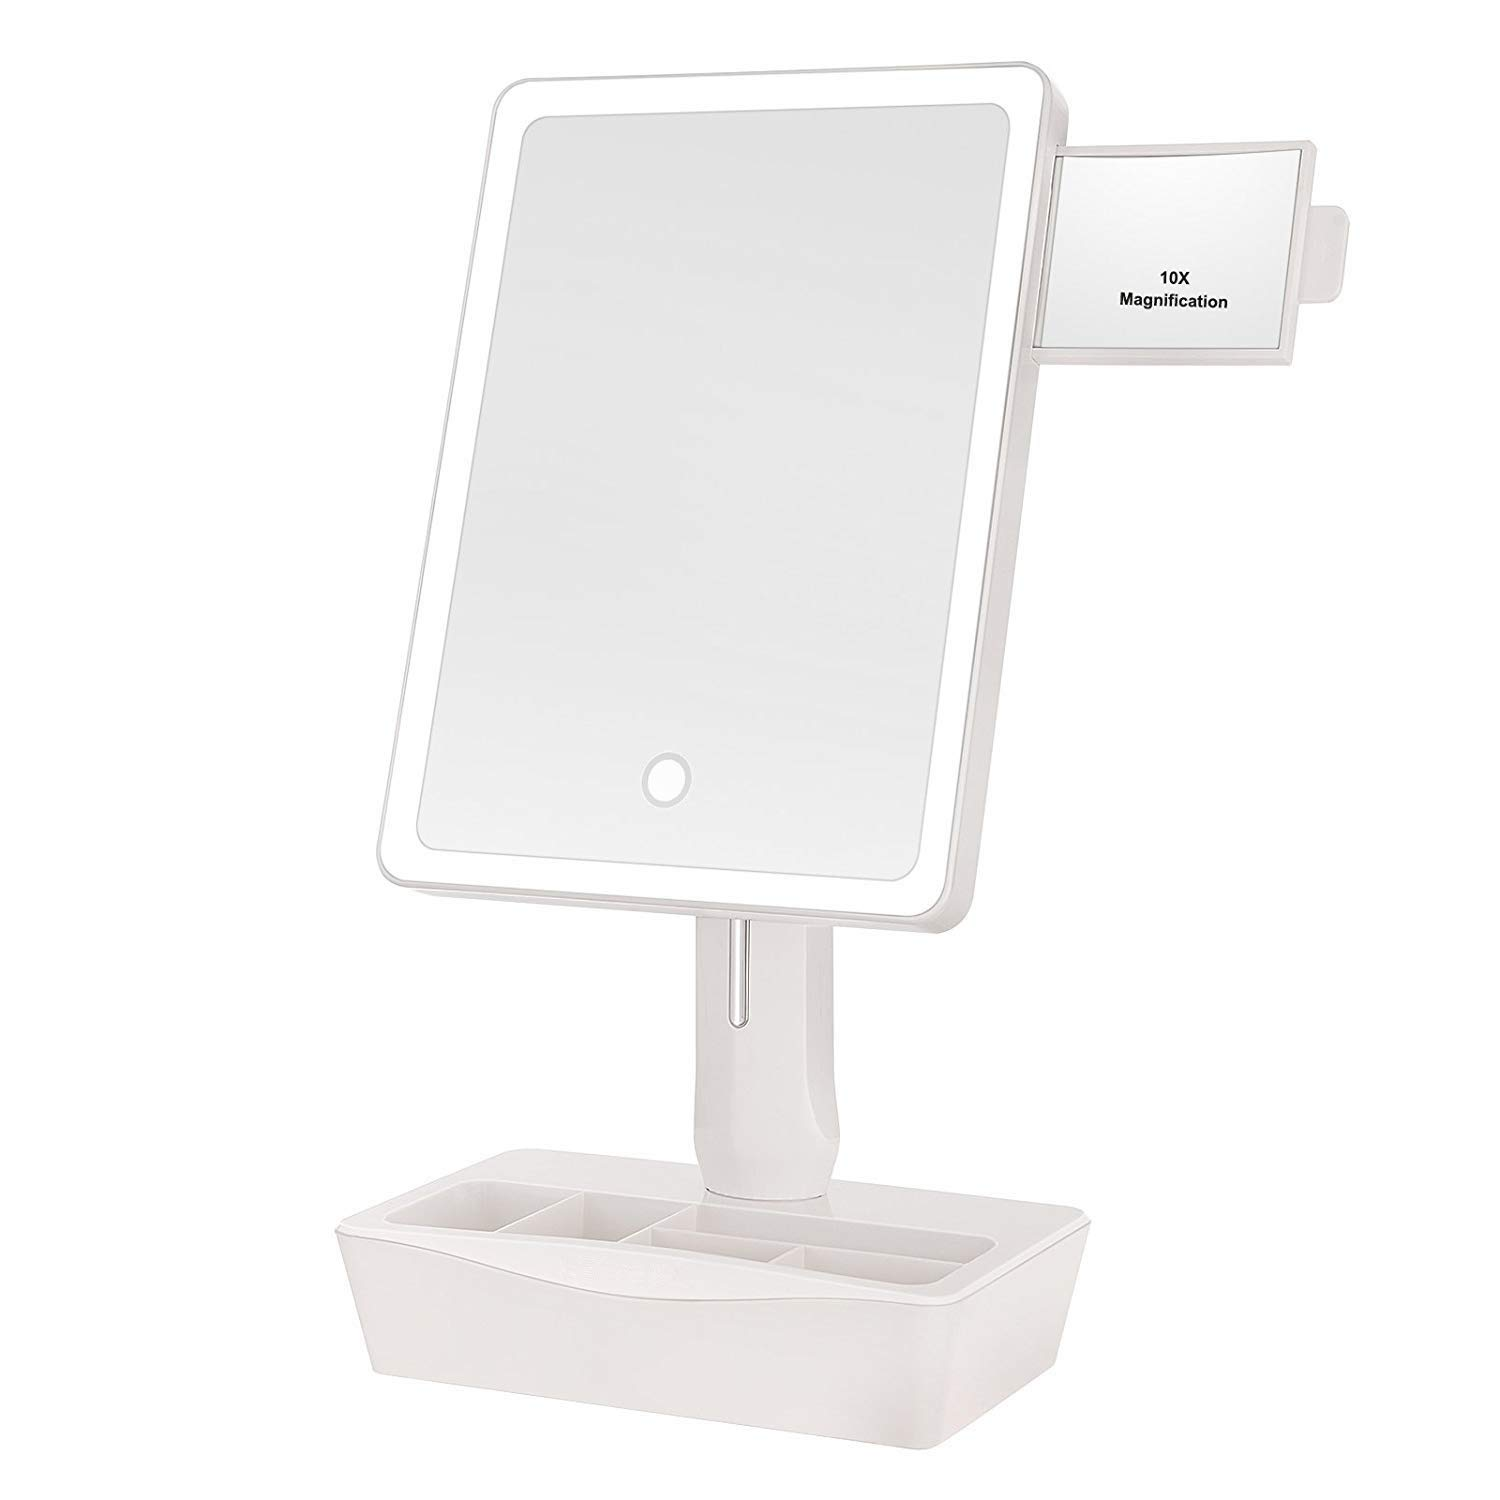 GROWRICH Lighted Makeup Mirror,with 2.9 x2.5 10X Magnifying and Slide-out Spot Mirror, Vanity Mirror with Lights,180 Degree Rotation,Smart Dual Power Supply and Adjustable LED Lights